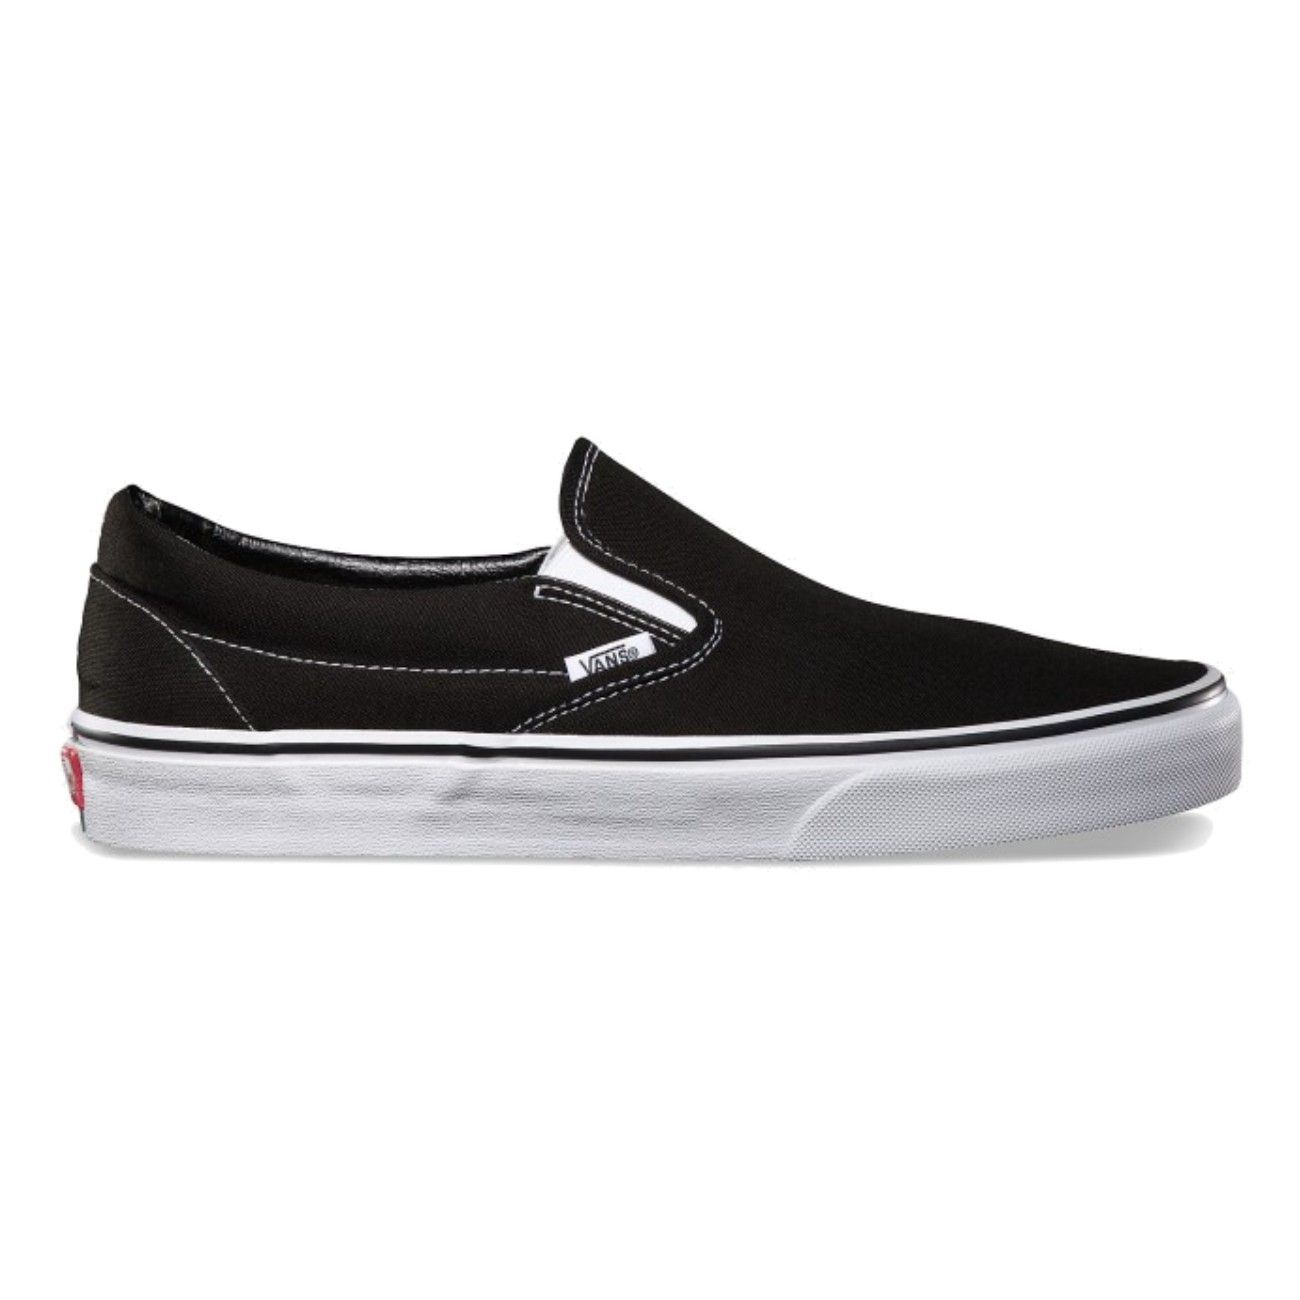 vans classic slip ons damen herren schuhe sneakers. Black Bedroom Furniture Sets. Home Design Ideas